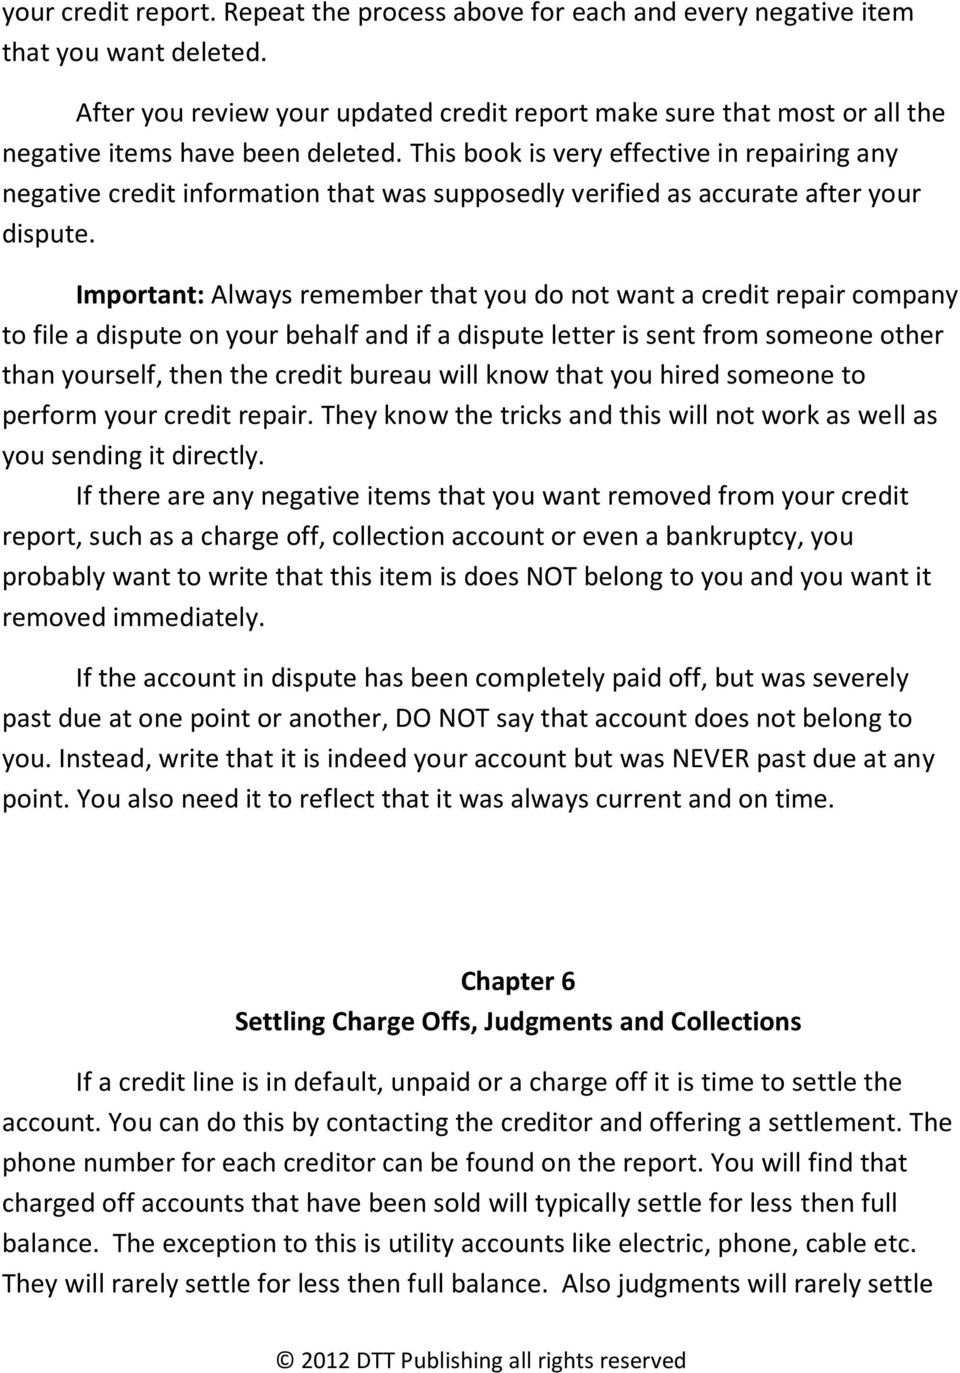 This book is very effective in repairing any negative credit information that was supposedly verified as accurate after your dispute.